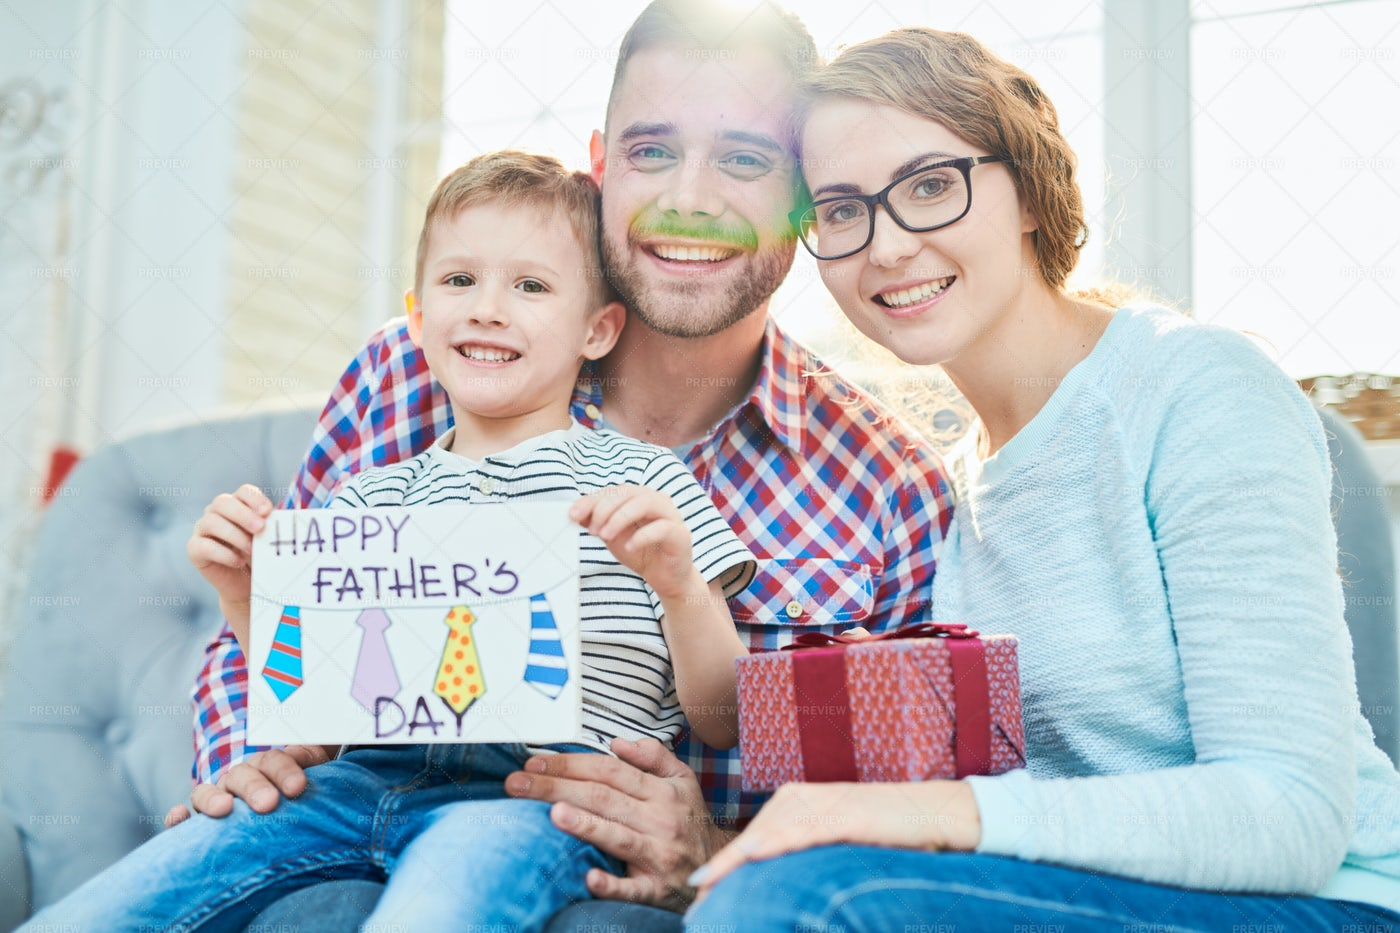 Family Portrait On Fathers Day Eve: Stock Photos